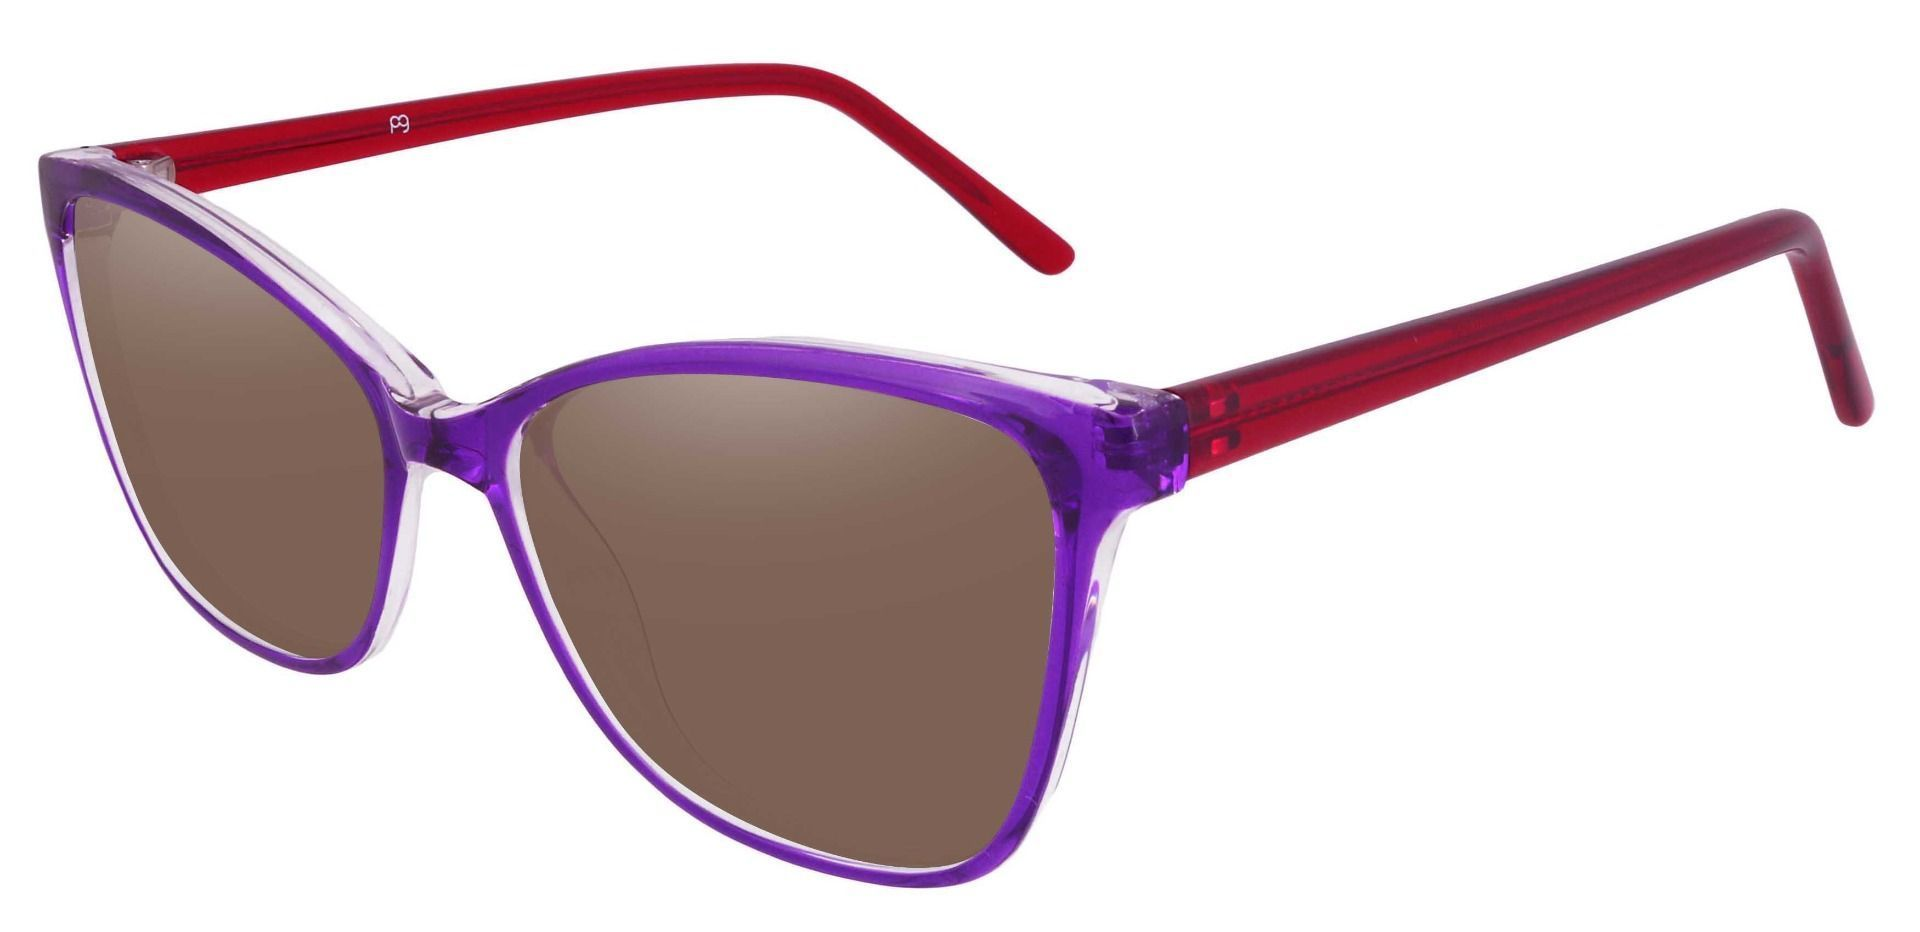 Brynn Cat Eye Prescription Sunglasses - Purple Frame With Brown Lenses